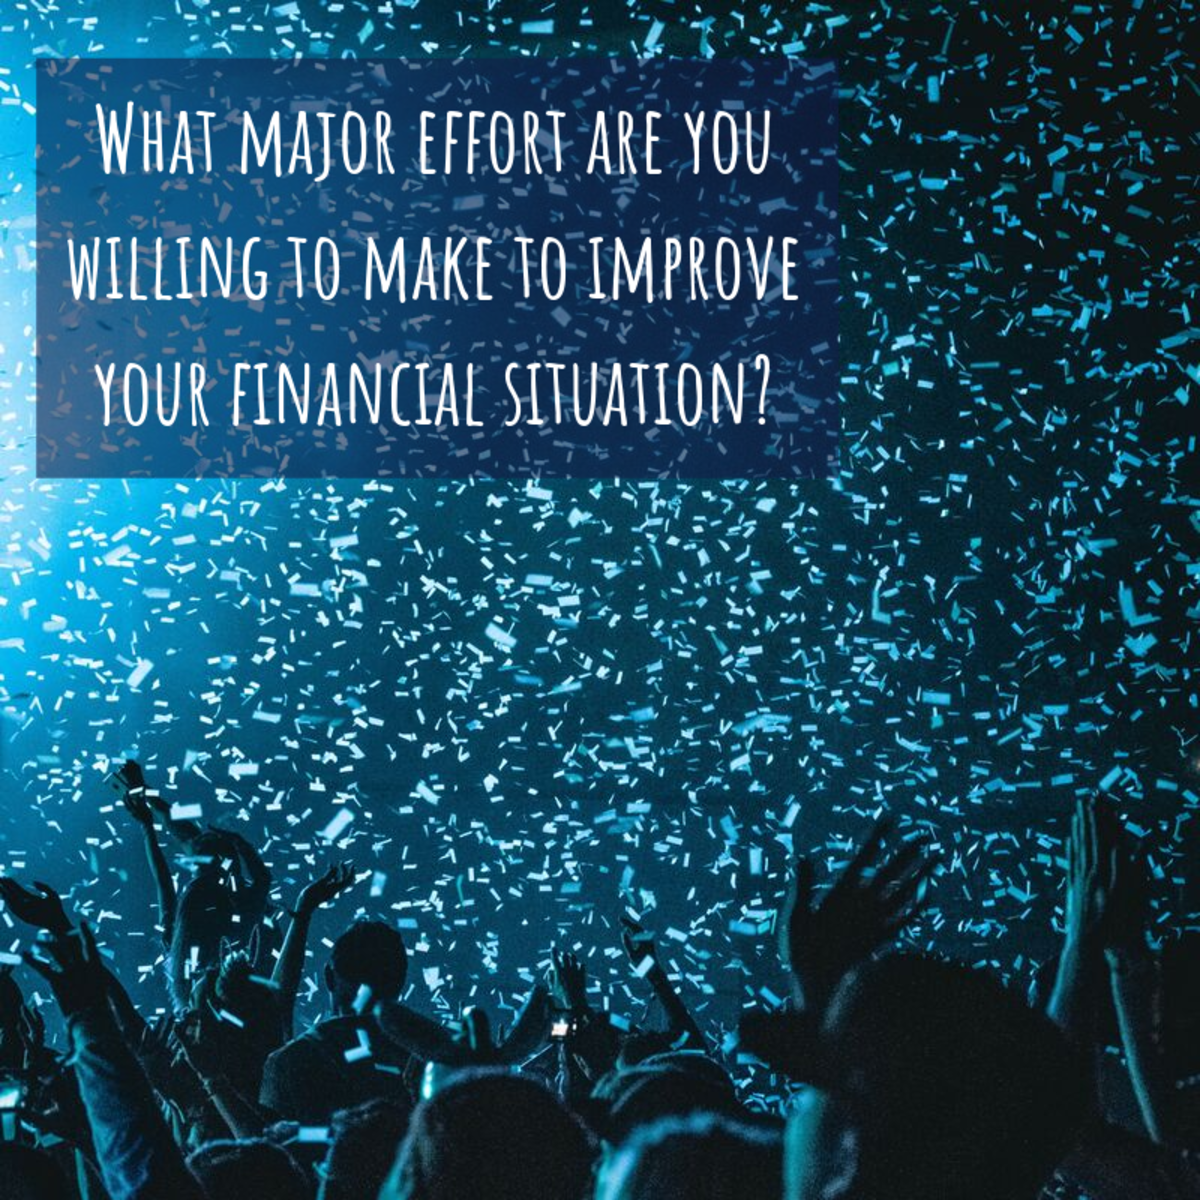 Is there a small change you could make to your life or routine that could help you save more and spend less?